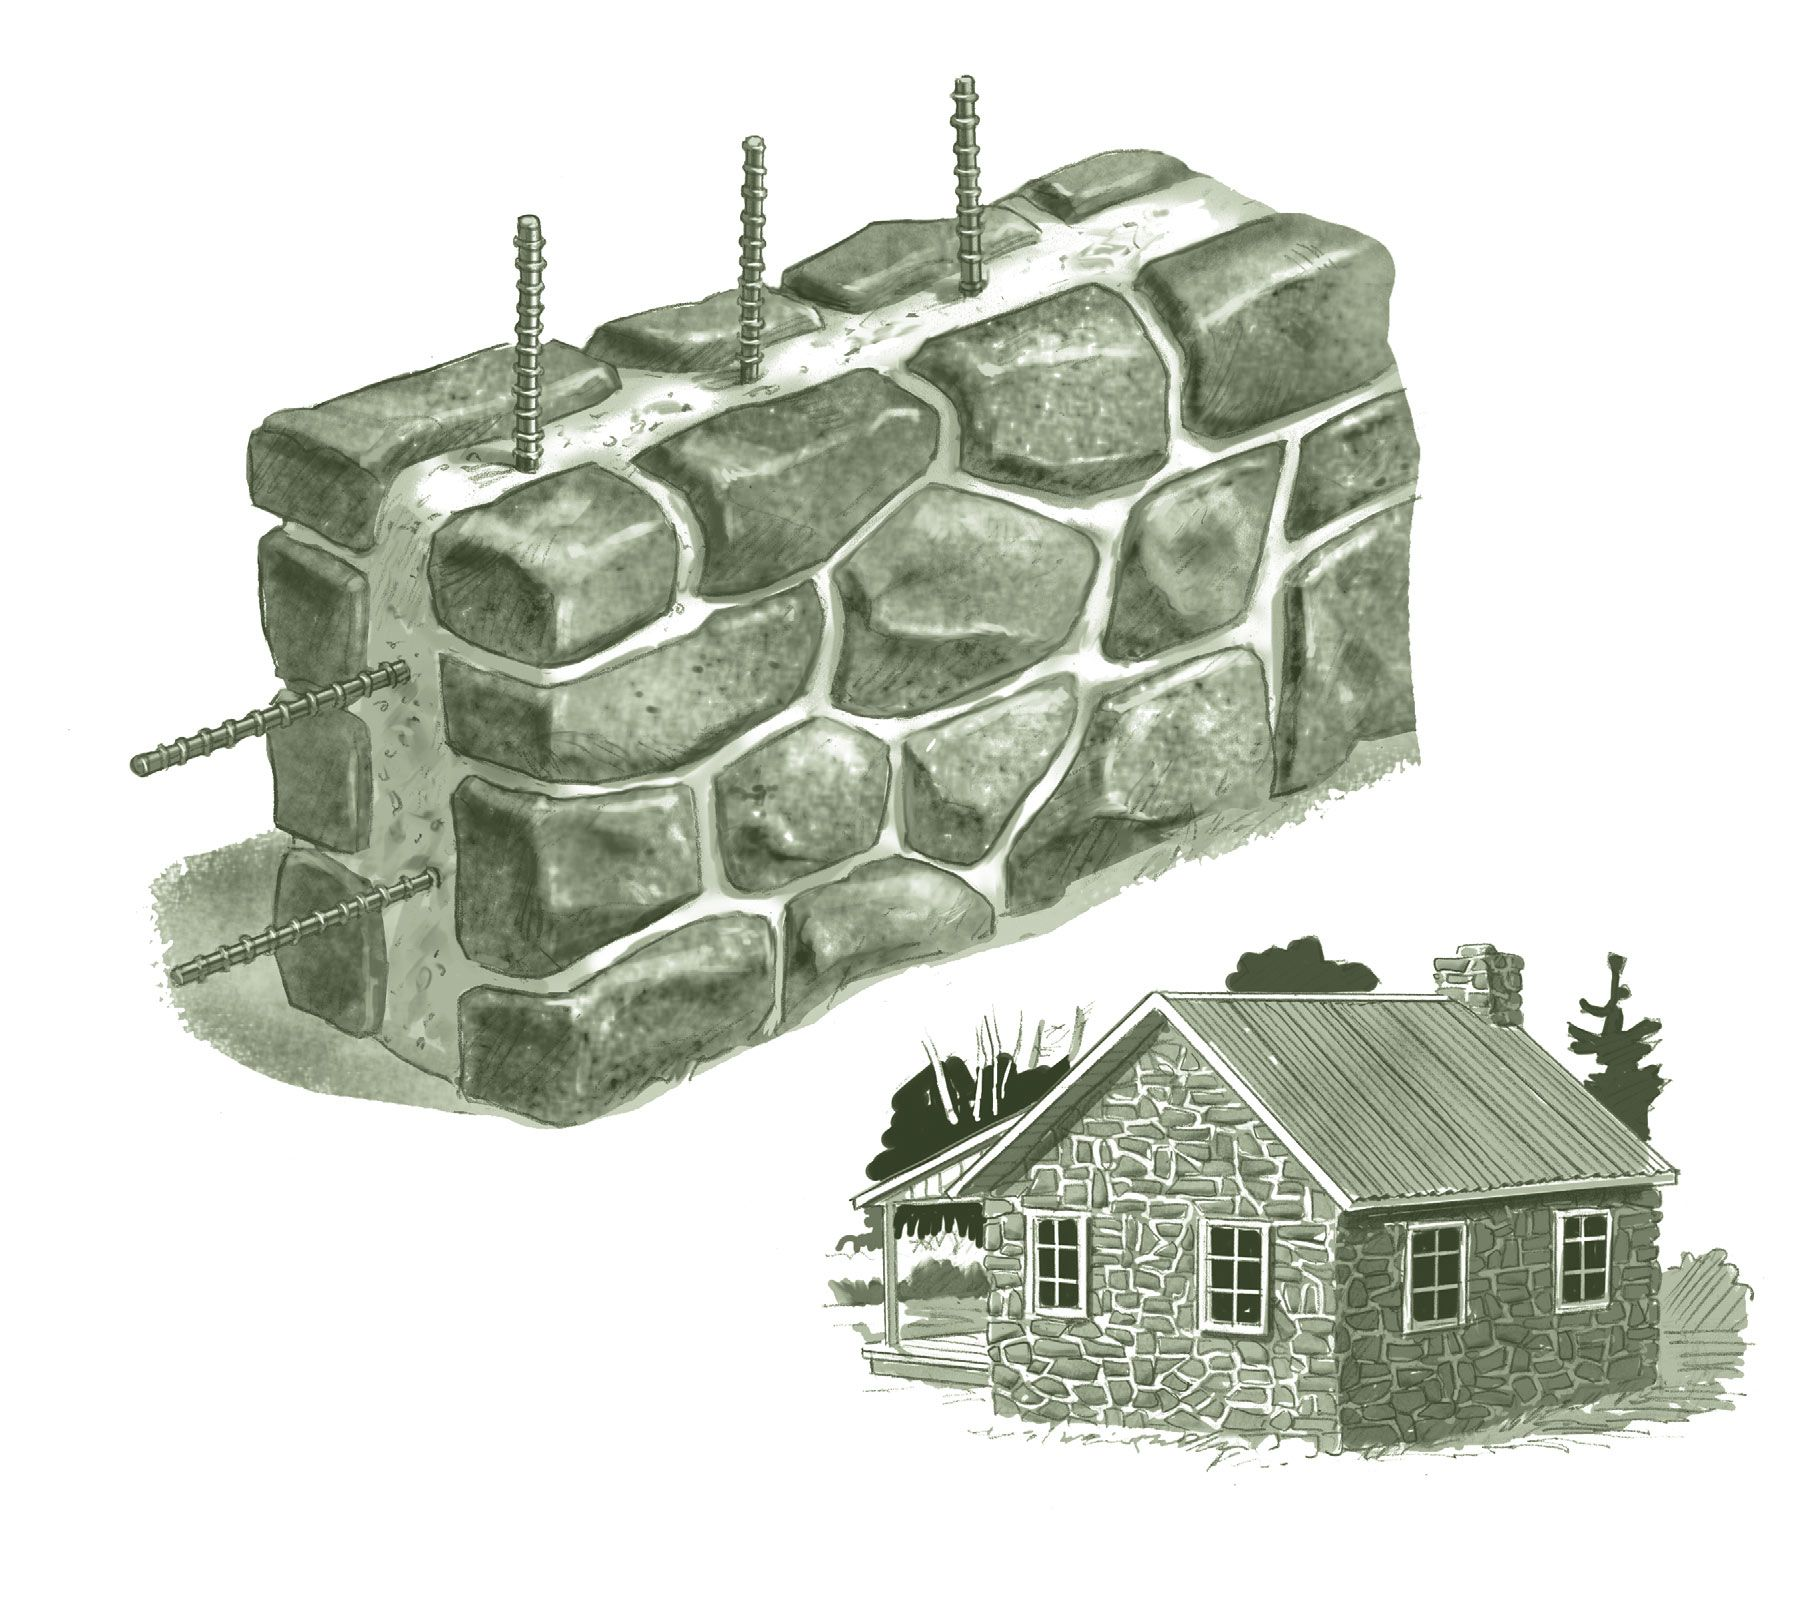 cabins built of stone, brick or other masonry materials have a